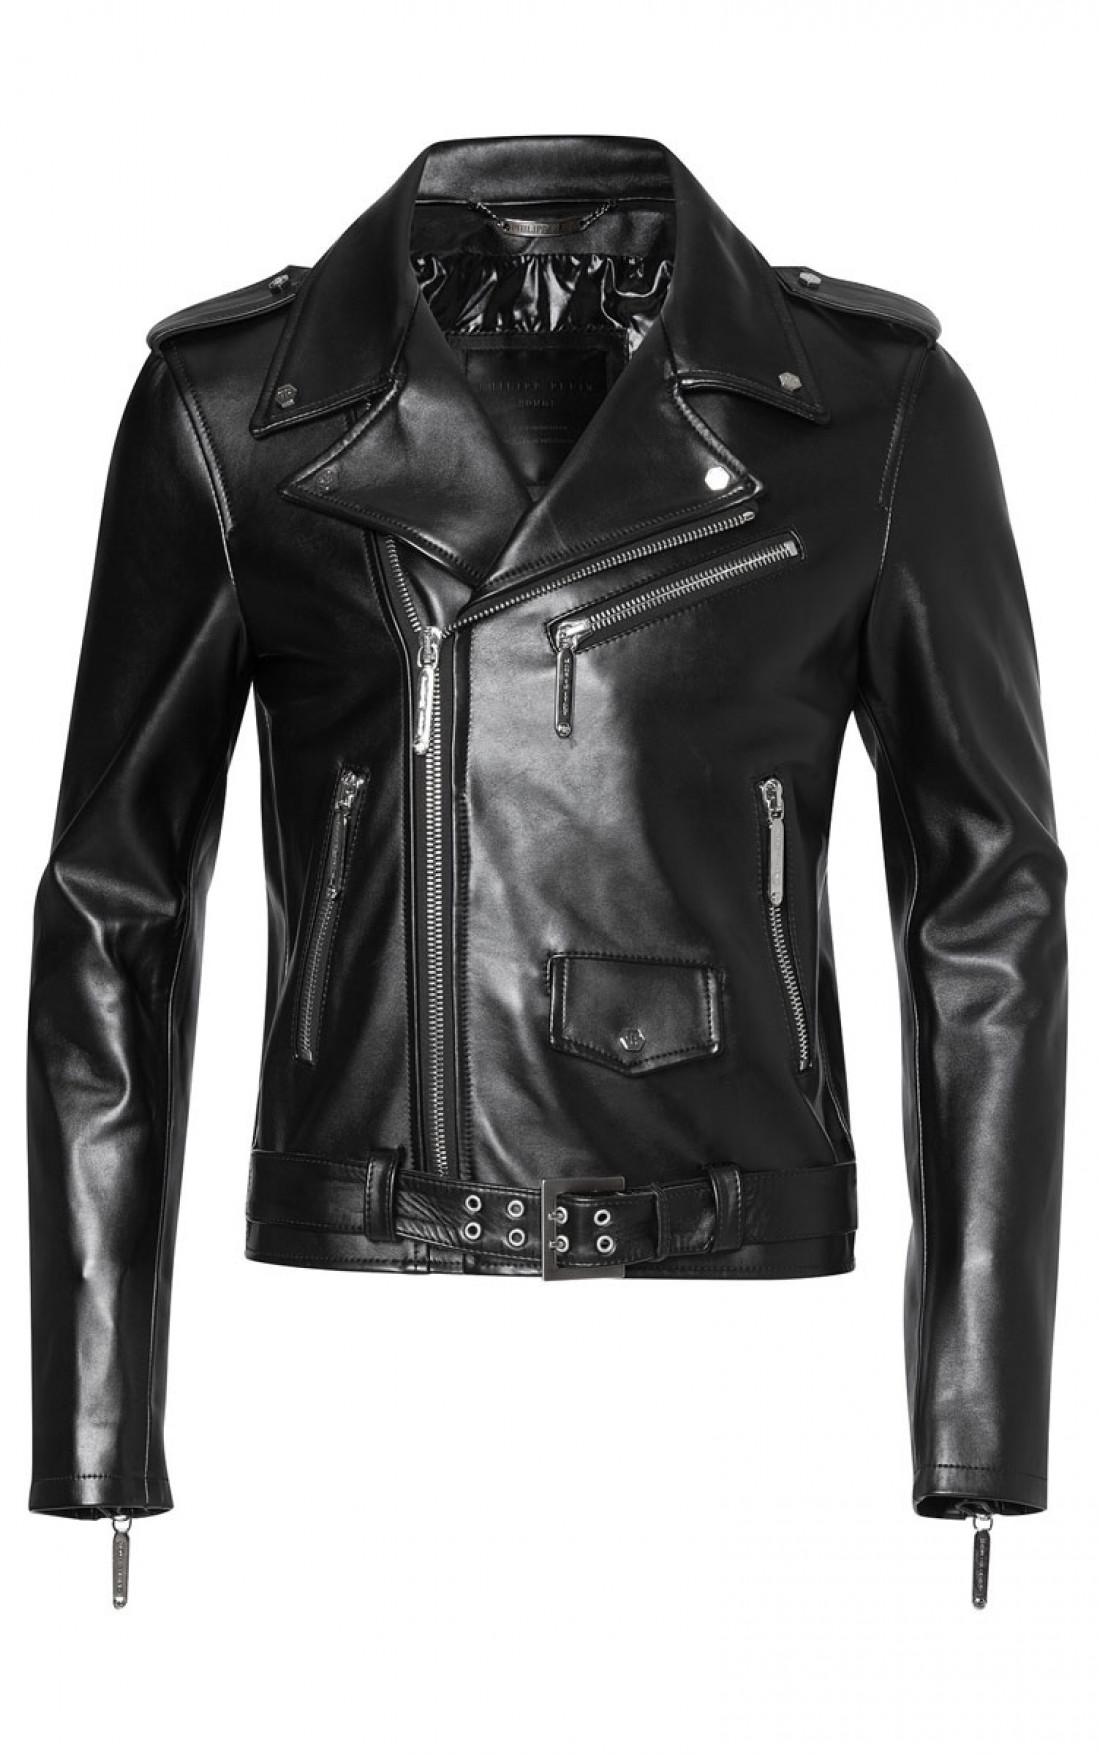 philipp plein jackets men 39 s leather joseph jacket men. Black Bedroom Furniture Sets. Home Design Ideas